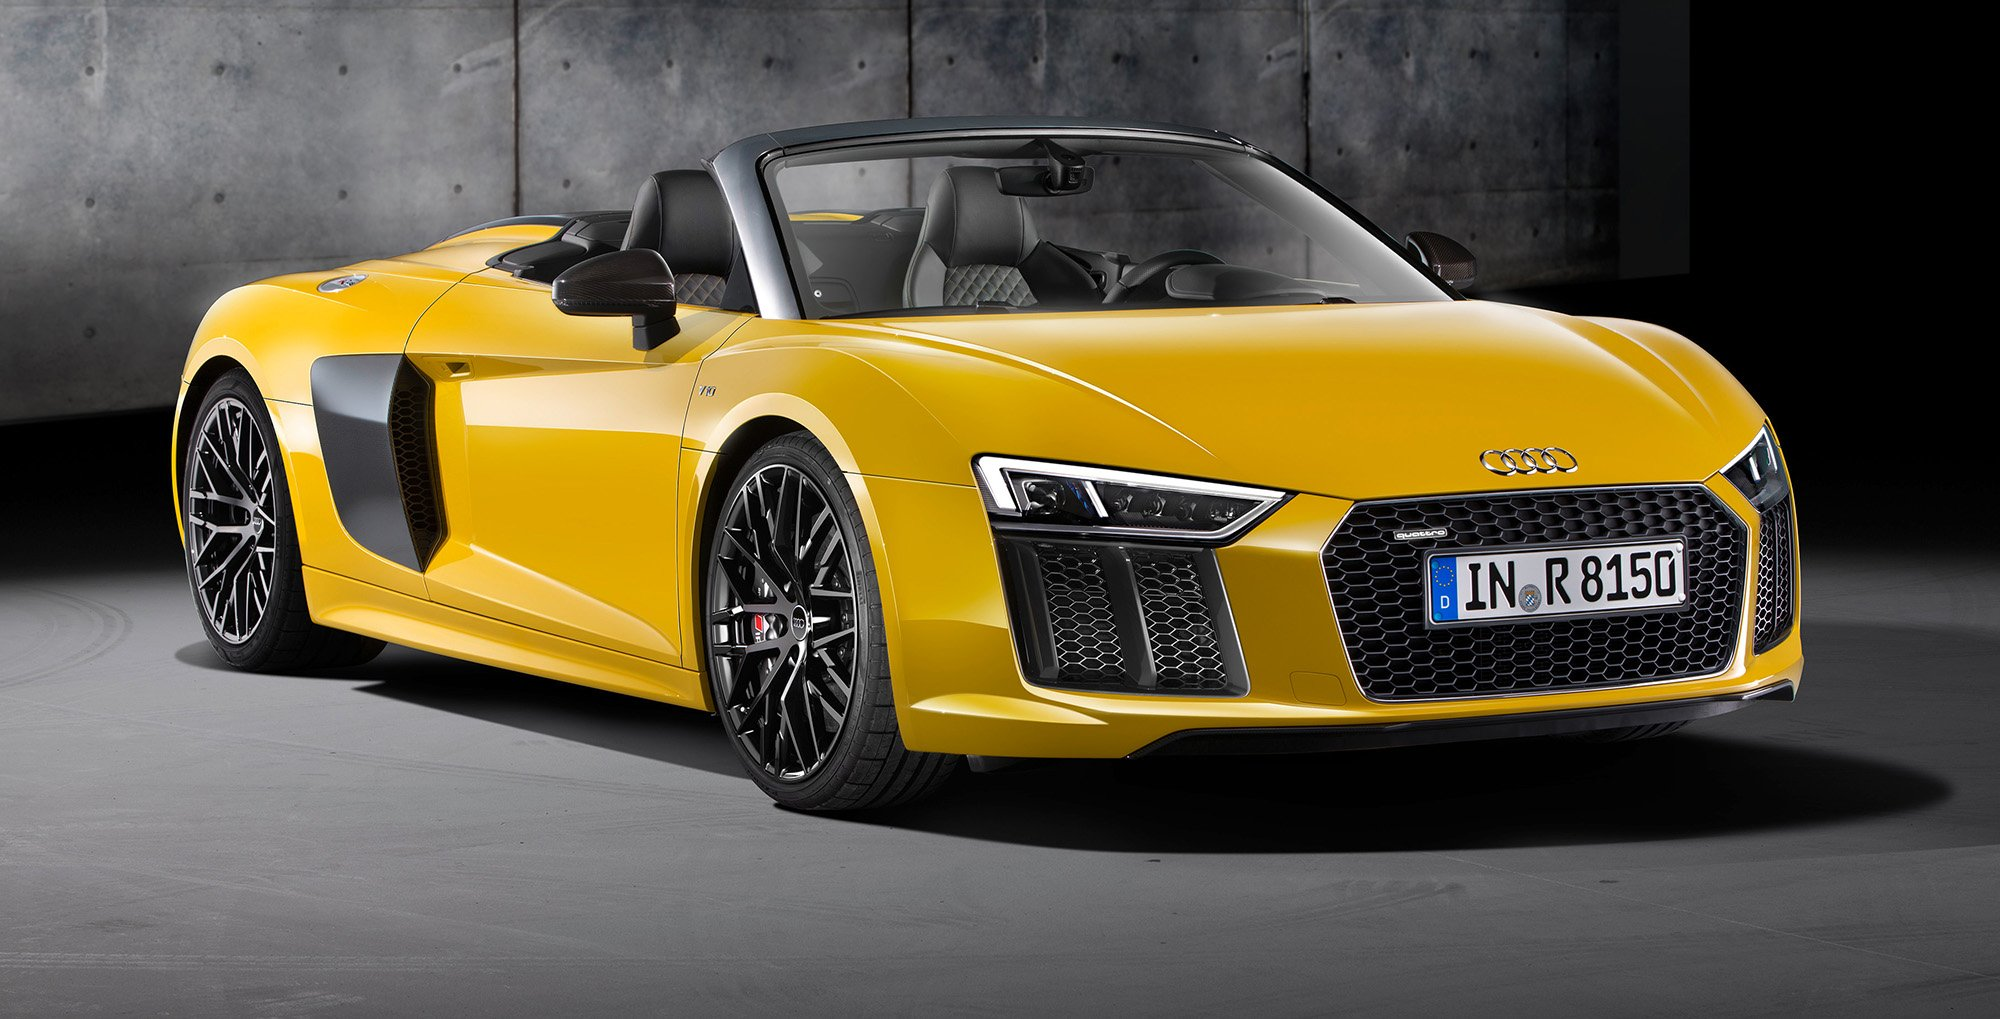 2017 audi r8 v10 spyder unveiled at new york motor show photos 1 of 5. Black Bedroom Furniture Sets. Home Design Ideas